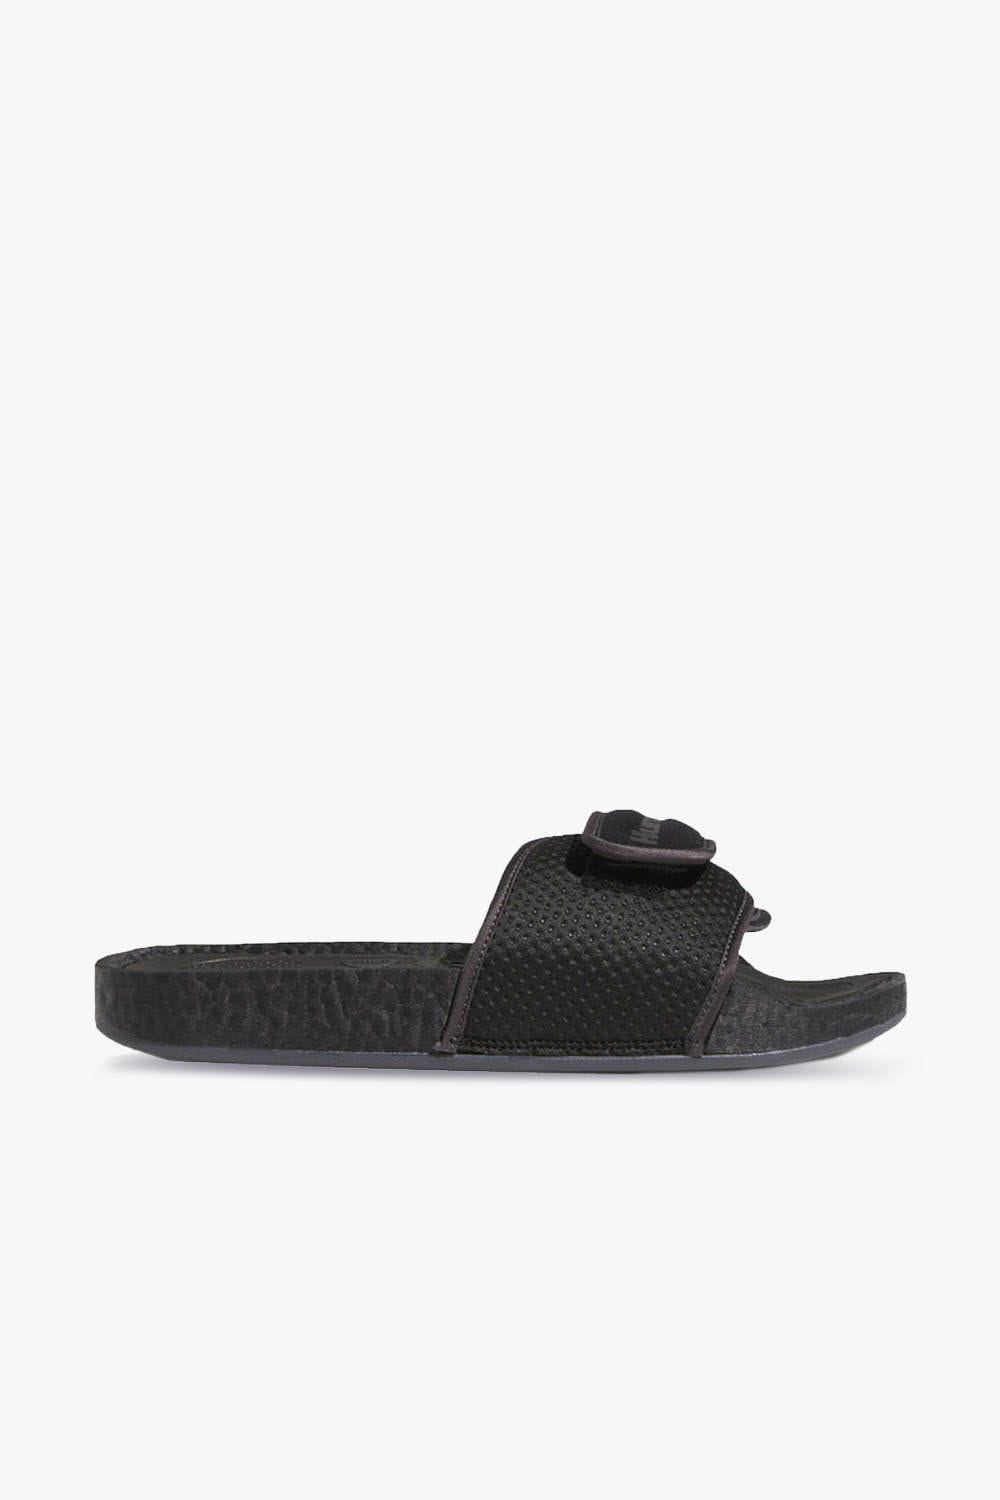 adidas Footwear adidas x Pharrell Williams Chancletas Hu Slides Black